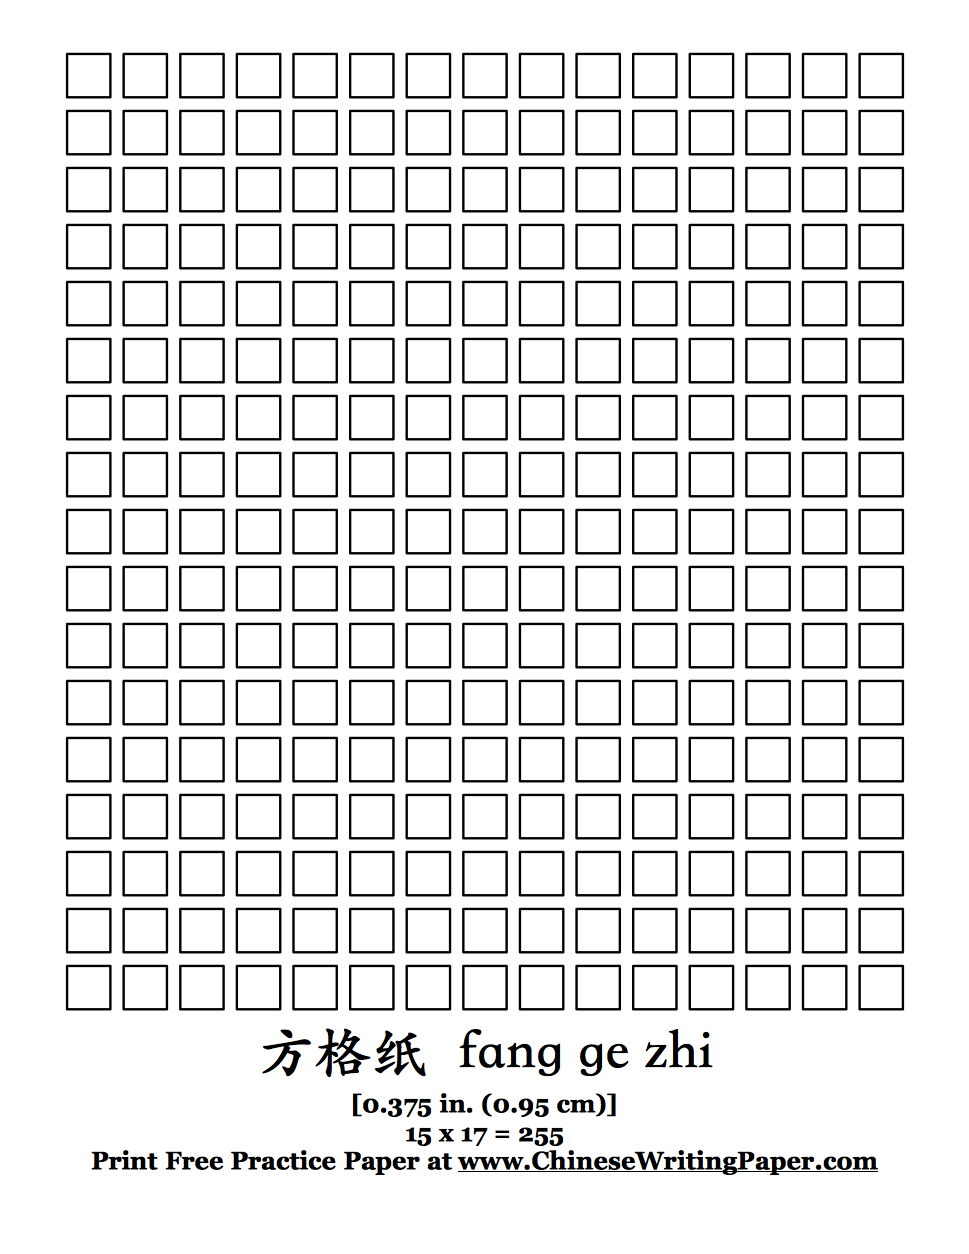 Chinese character writing paper